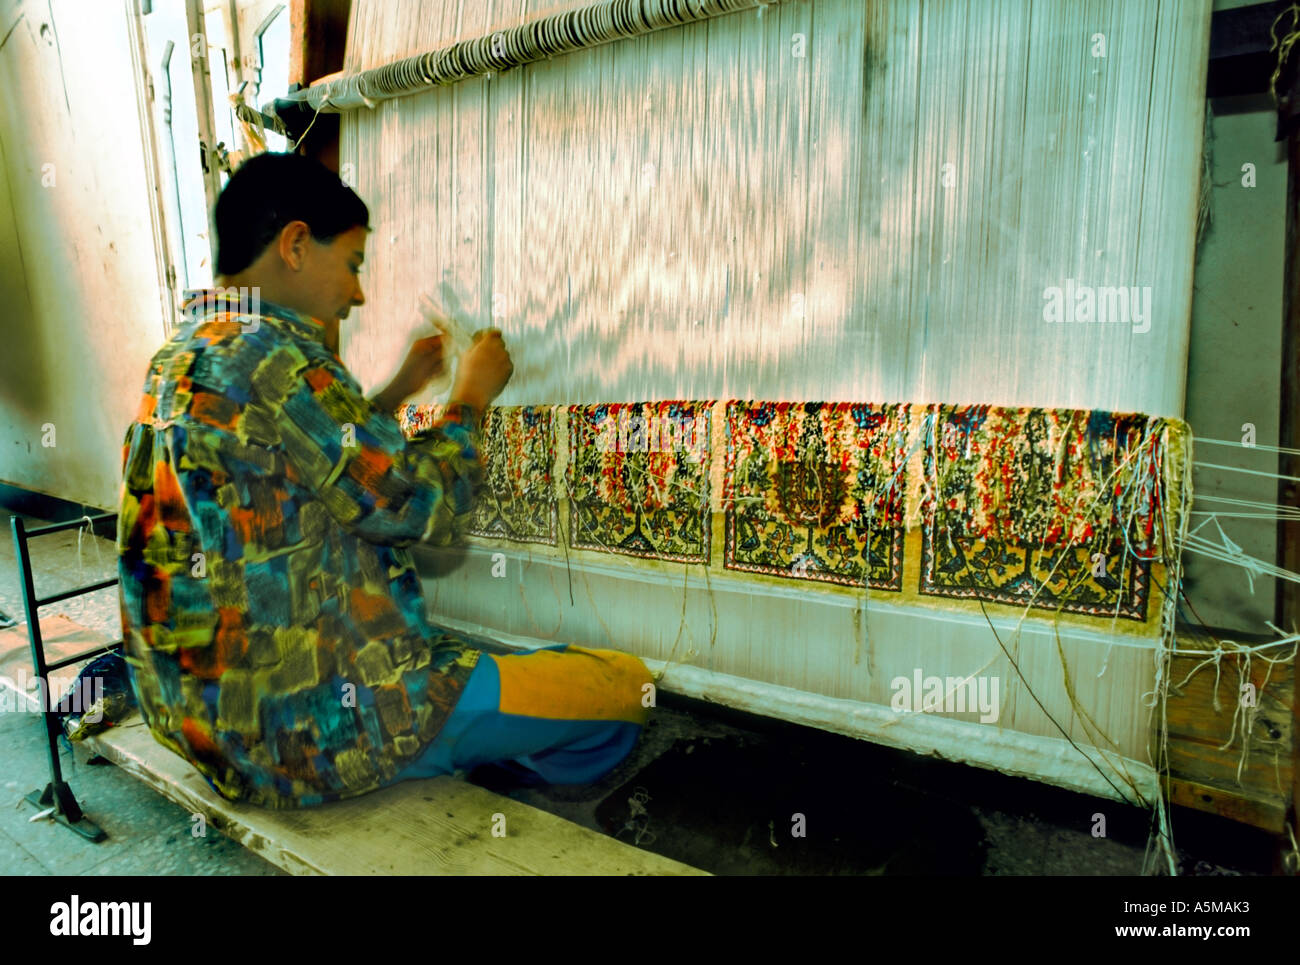 Saqqarah Egypt, Young Boy Working, Weaving CARPET IN Factory, Underage Adolescent at Work on Rug - Stock Image